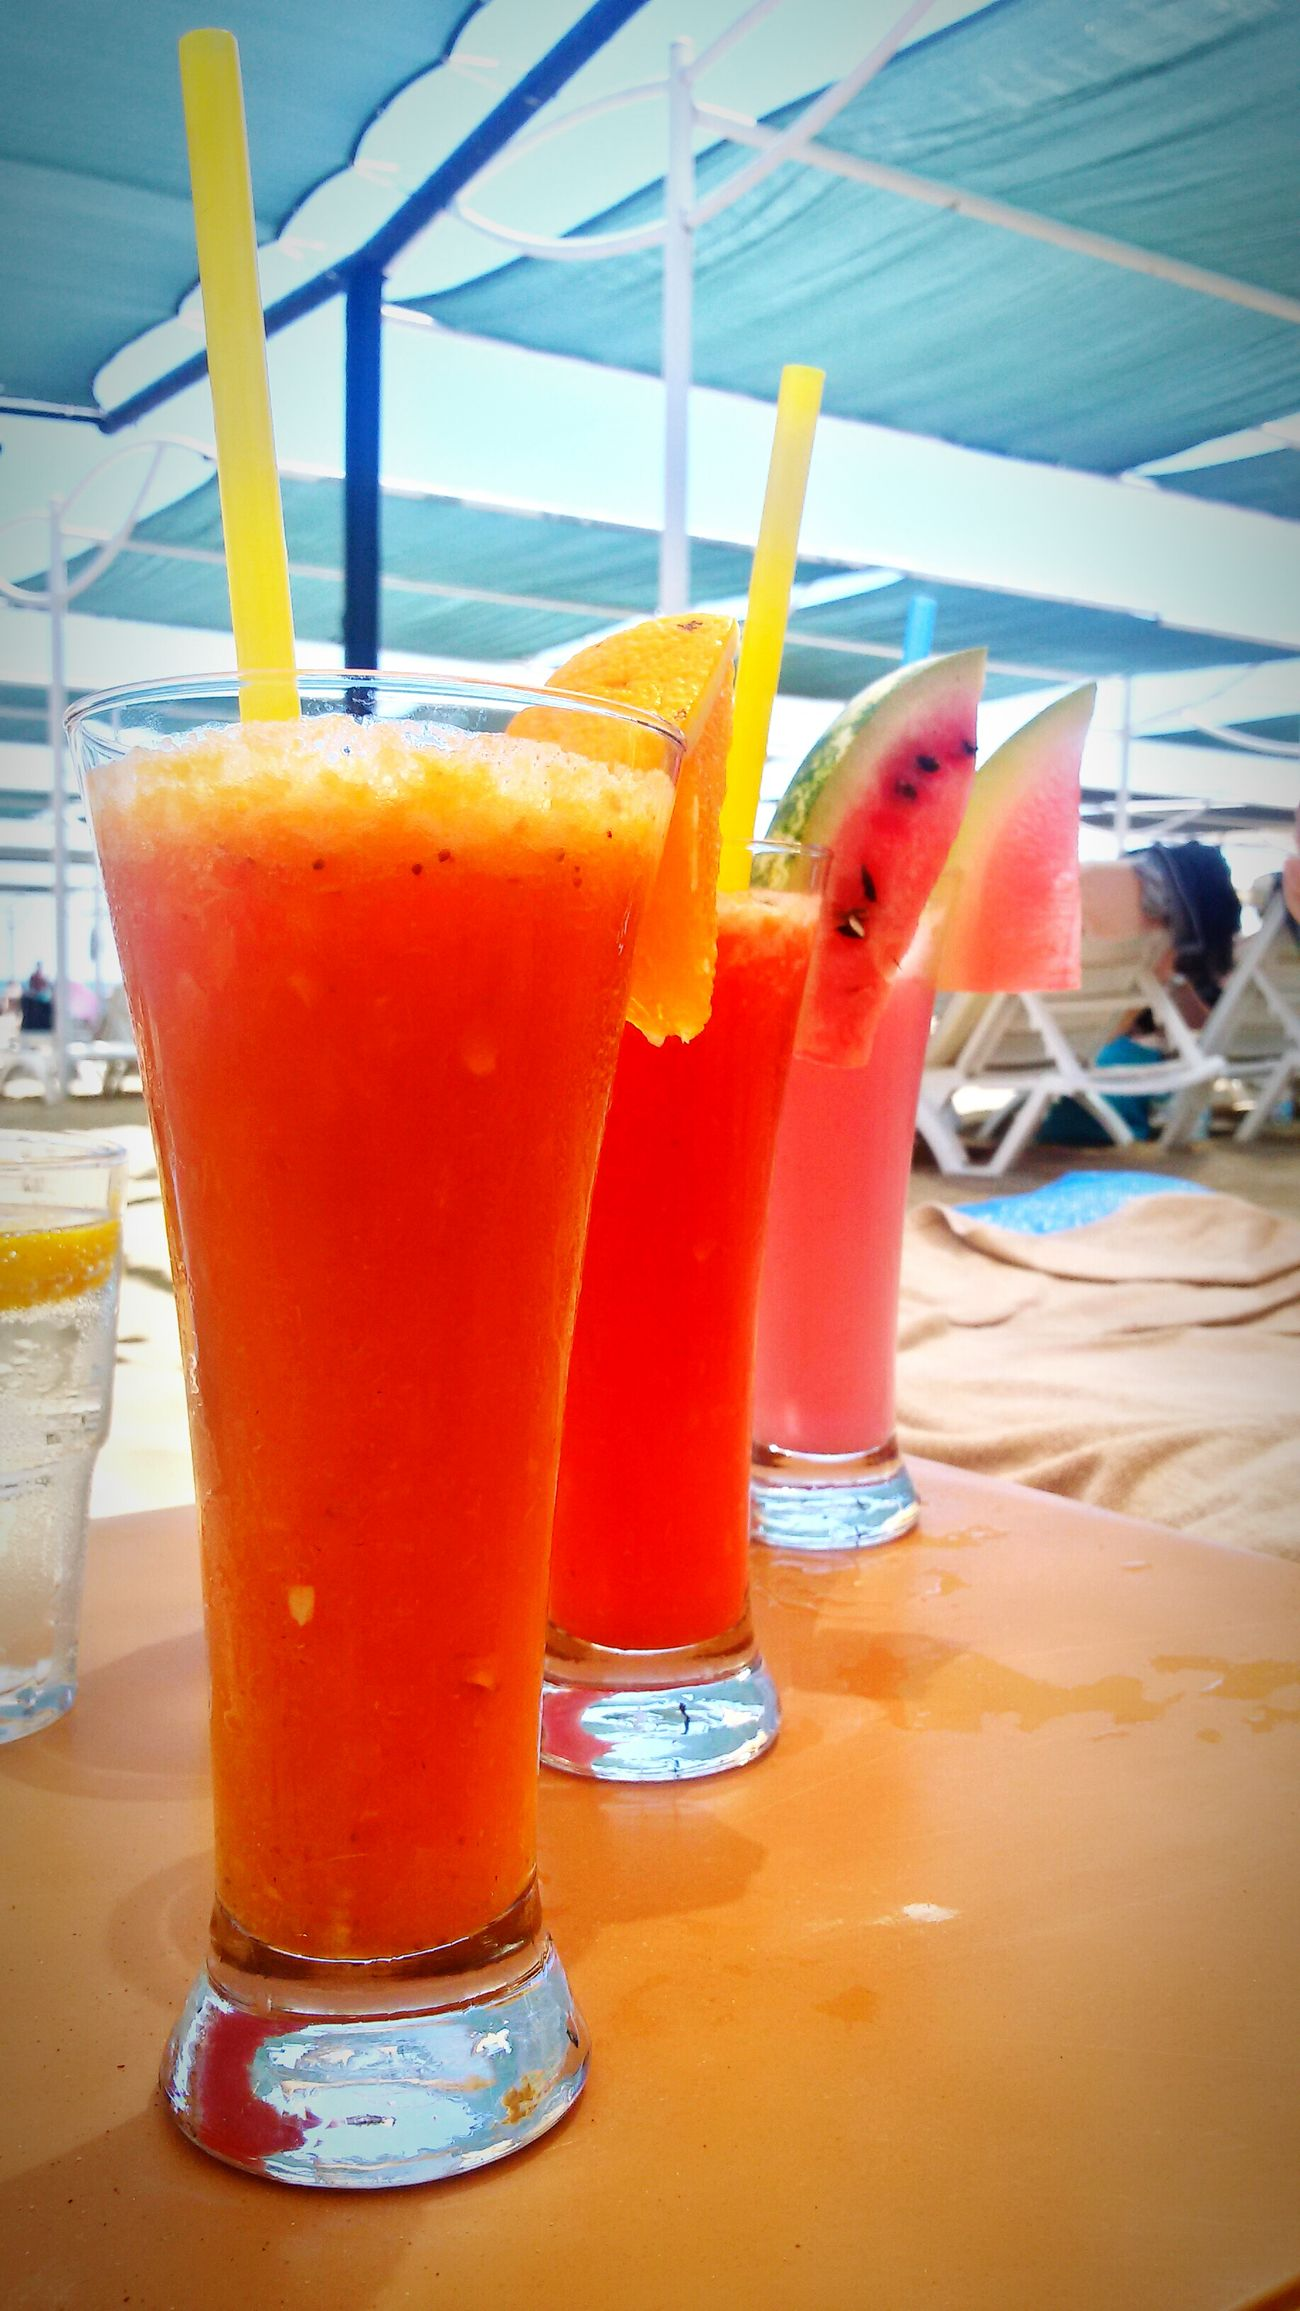 Cocktails Cocktails🍹🍸 On The Beach Turkey Delicious ♡ *-* Nice Day Schönes Wetter Sun